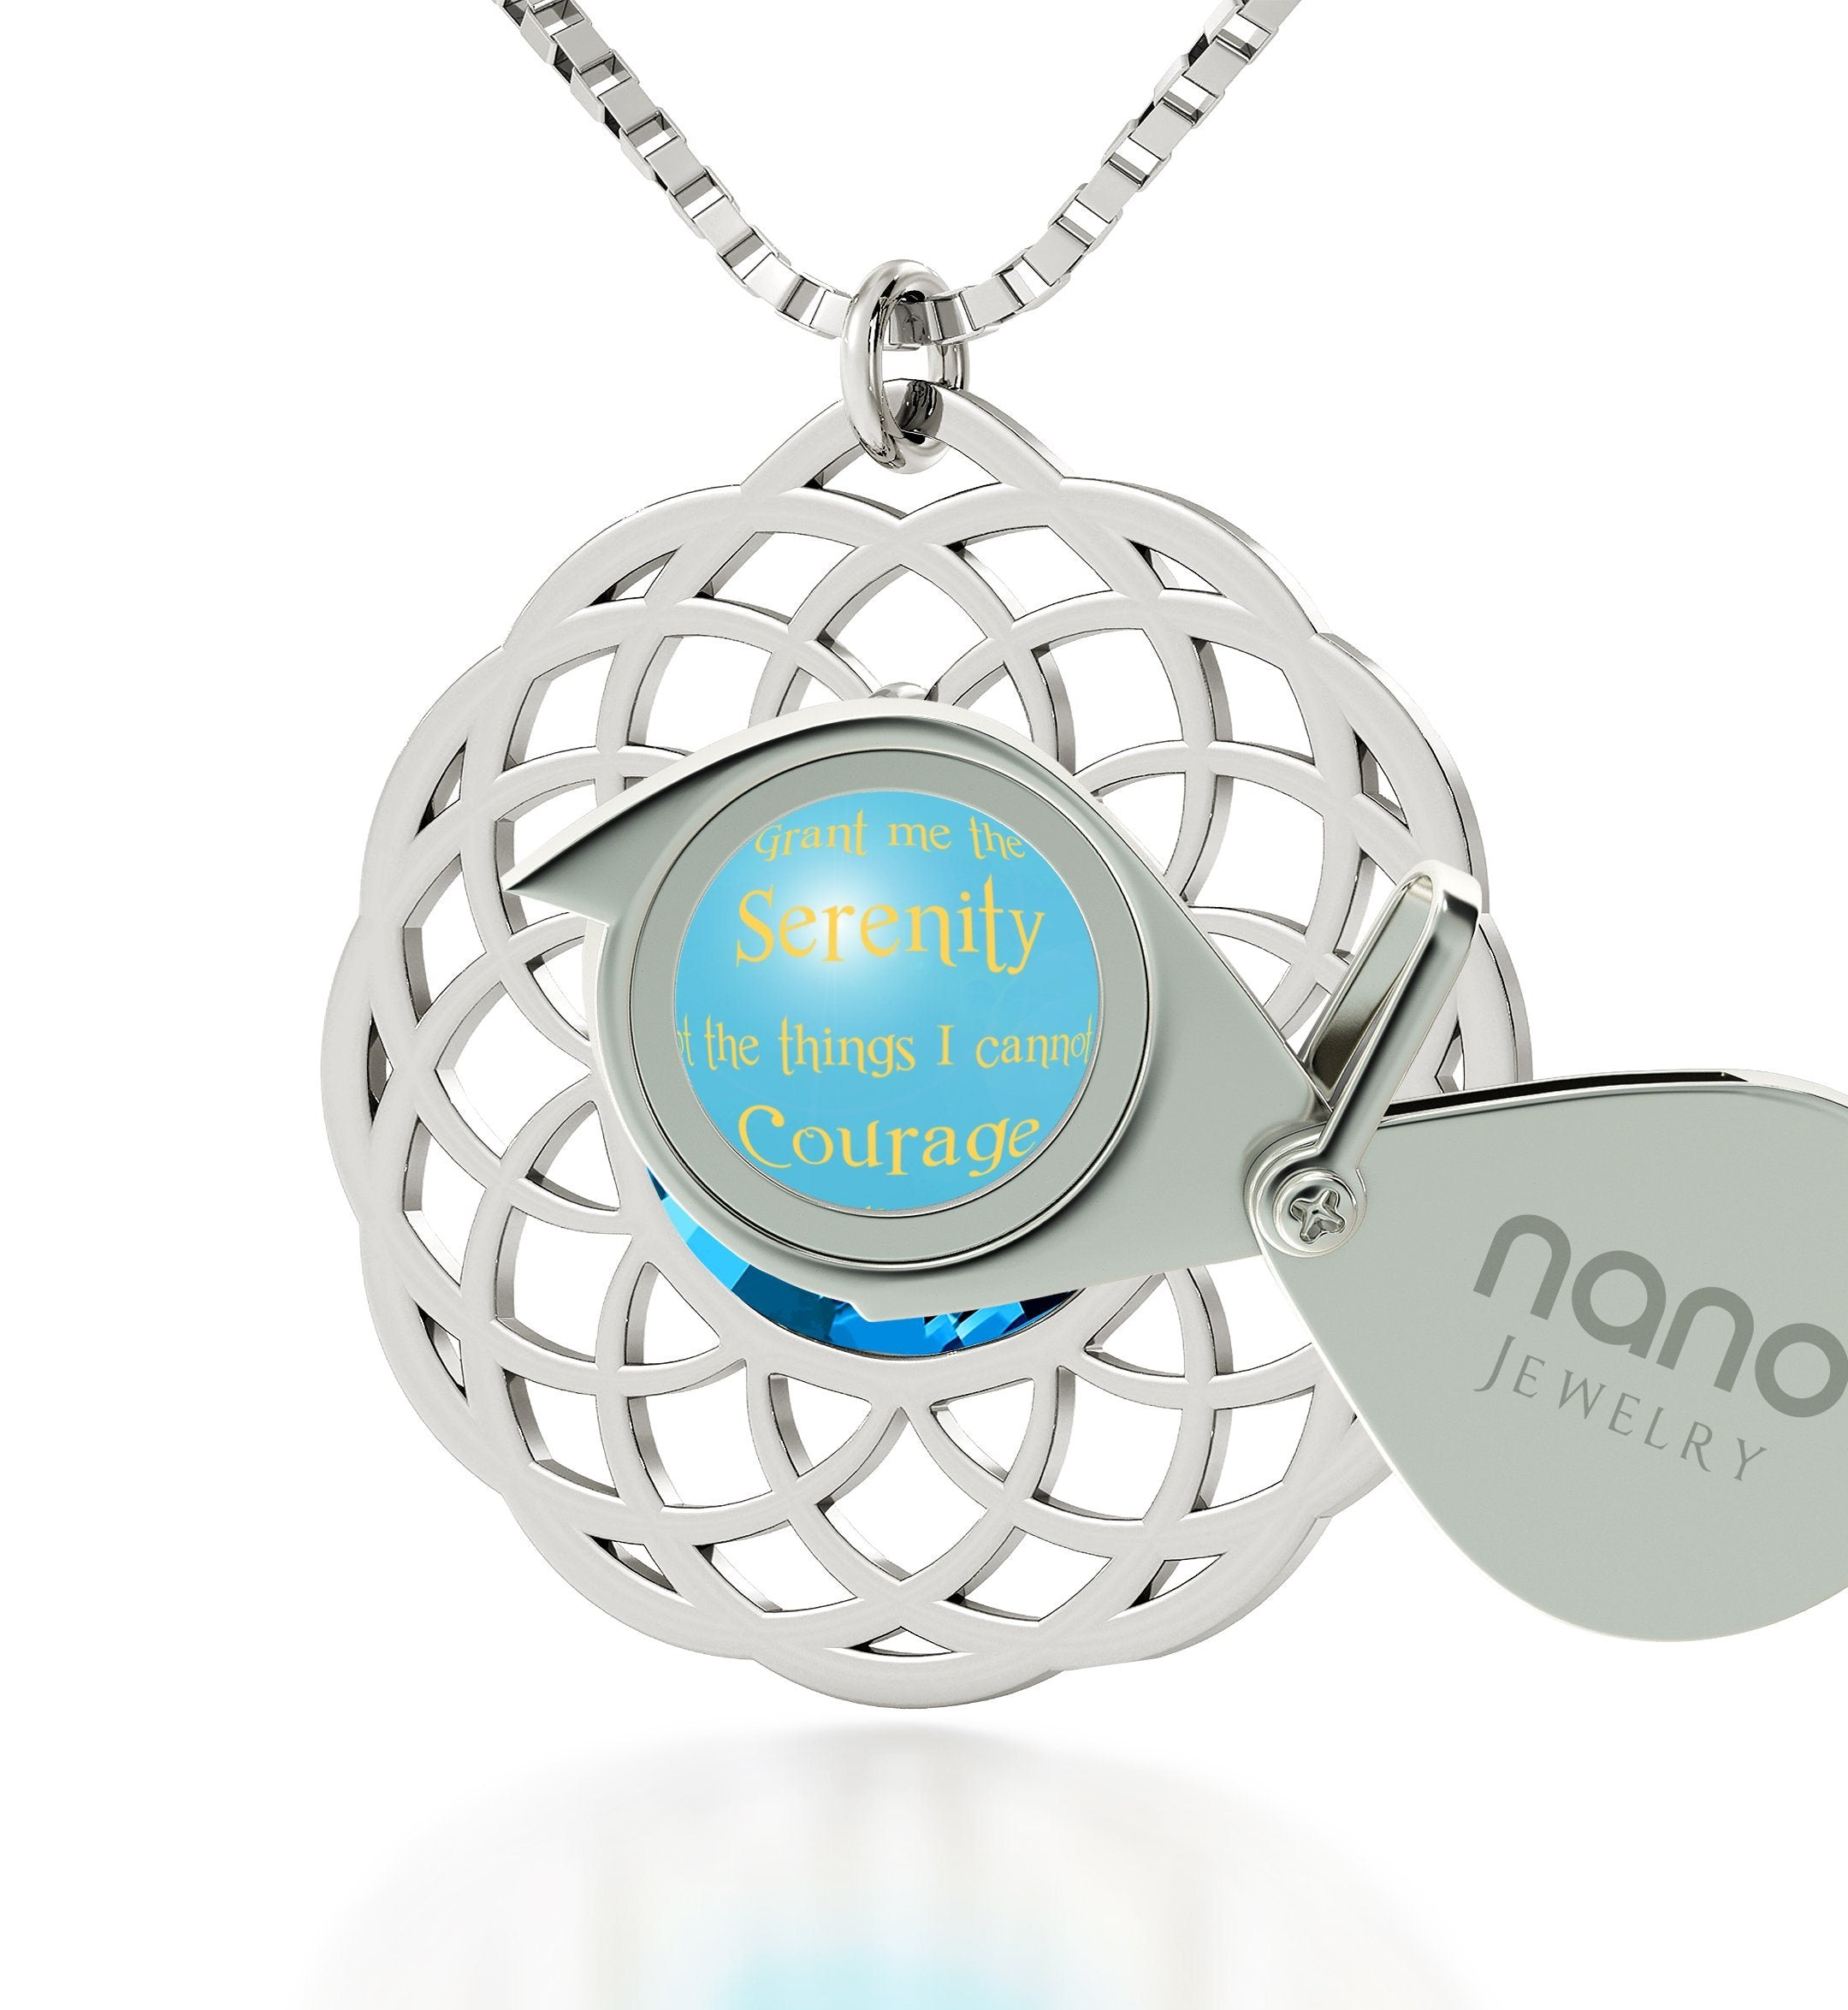 Serenity Jewelry: Top Gifts for Wife, Womens Birthday Presents, Blue Stone Necklace, Nano Jewelry